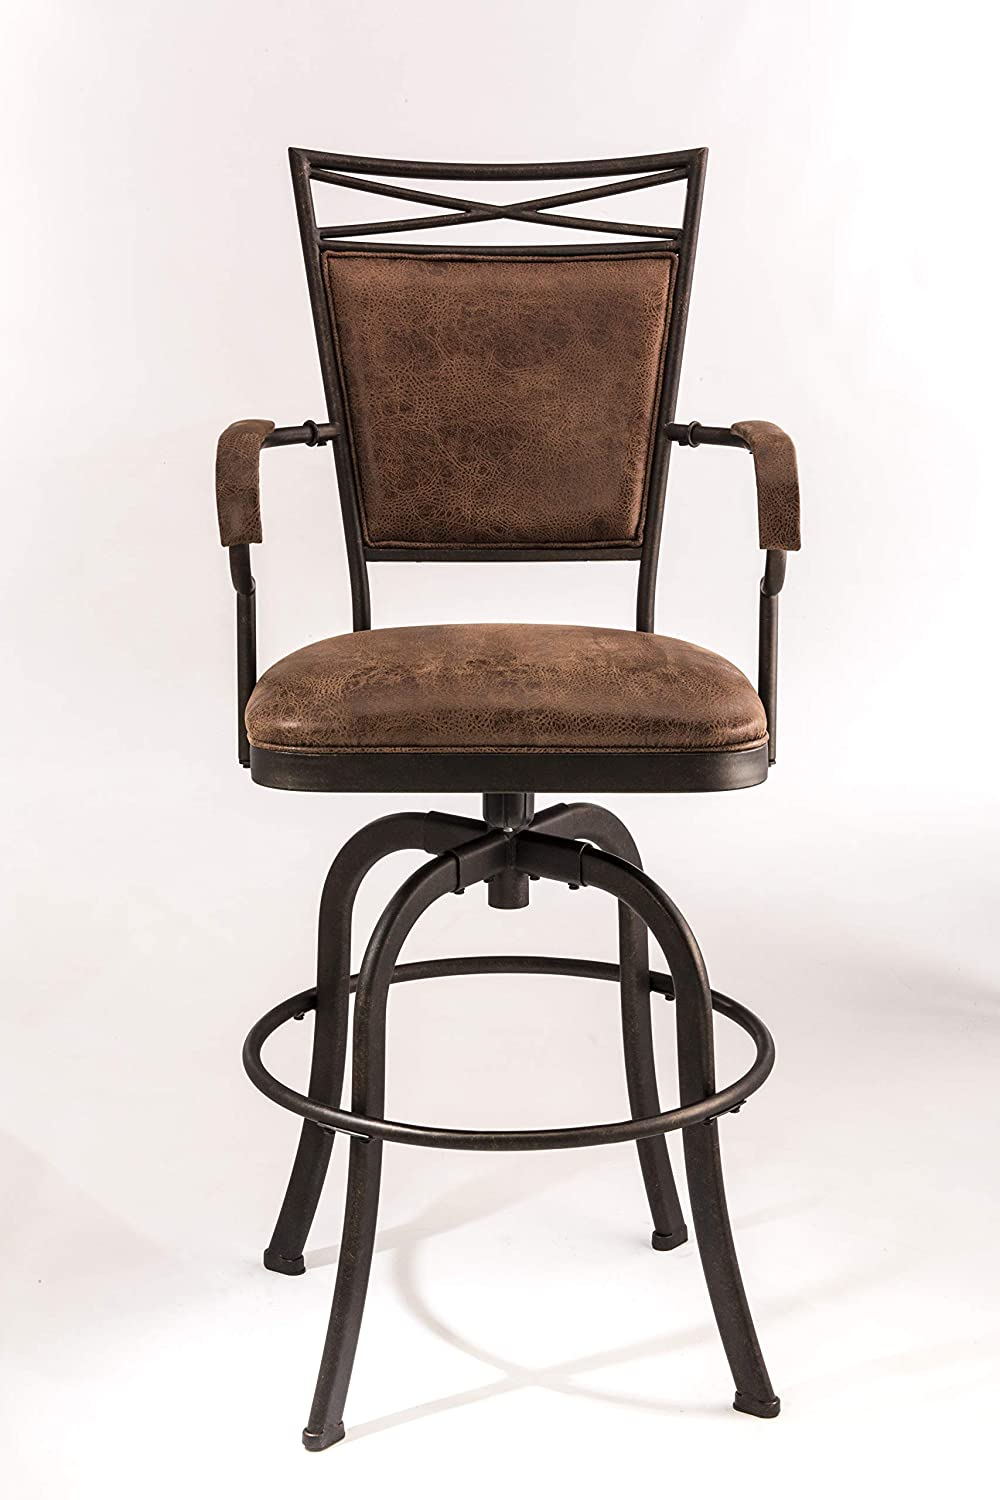 Hillsdale Bridgetown Swivel Tilt Barstool, Aged Bronze Finish